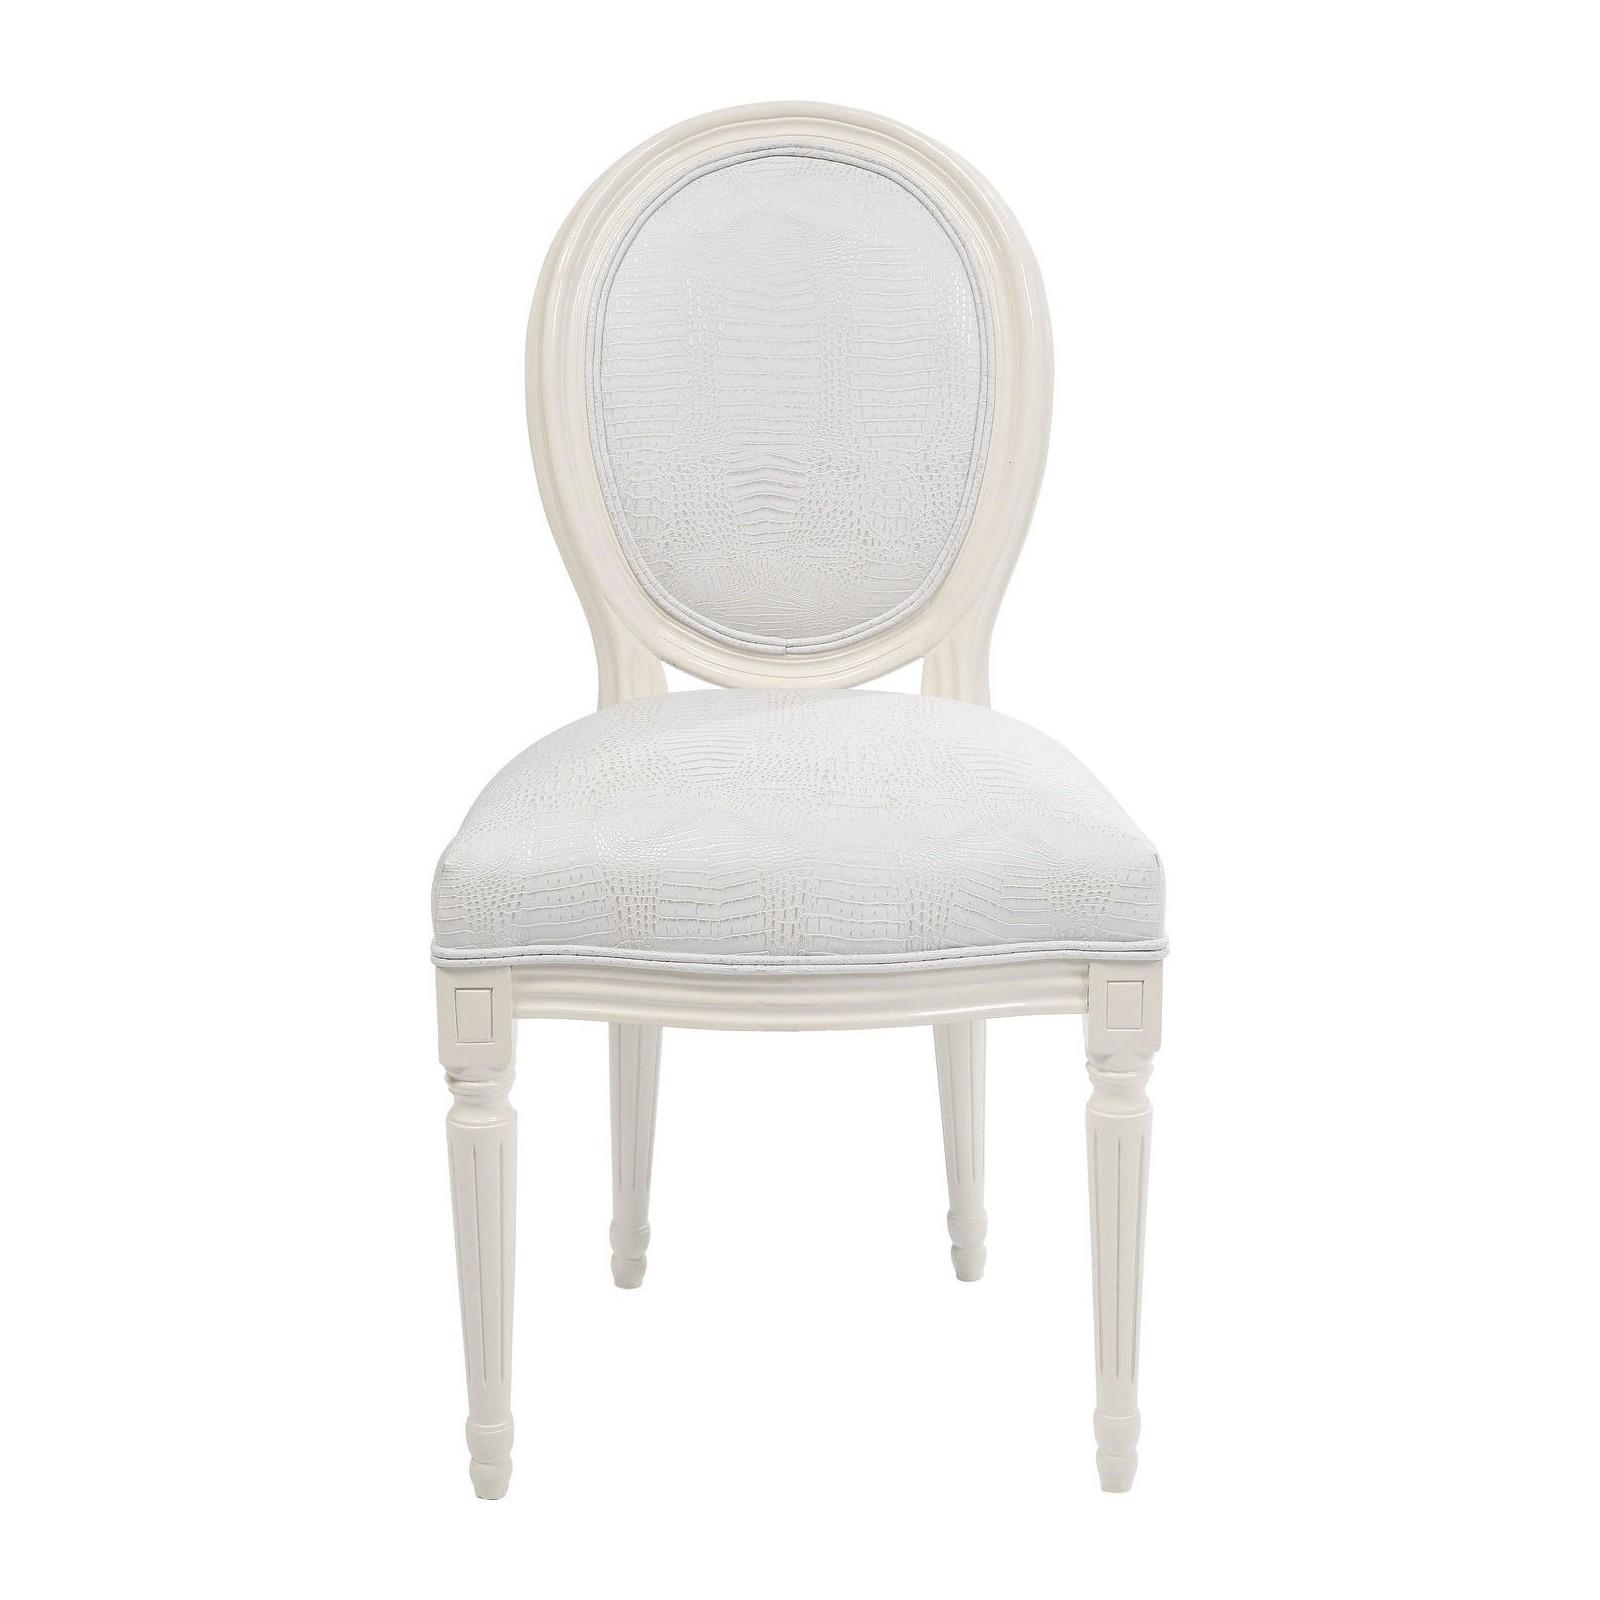 Chaise baroque blanche louis kare design - Chaise baroque blanche ...